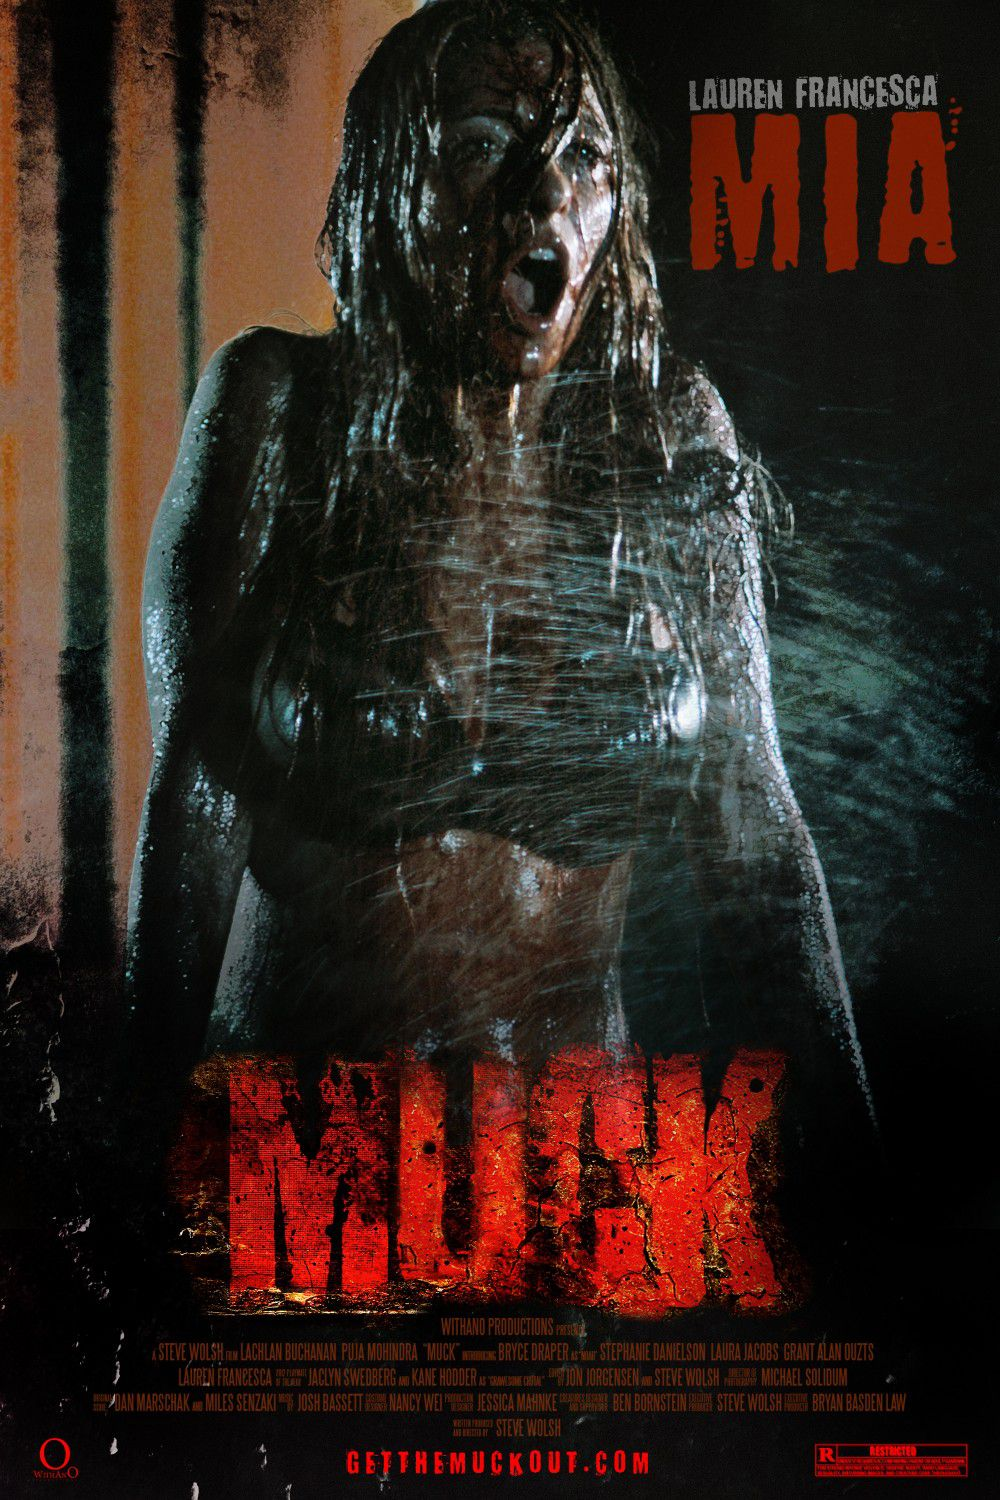 Muck - horror film - Lauren Francesca is Mia